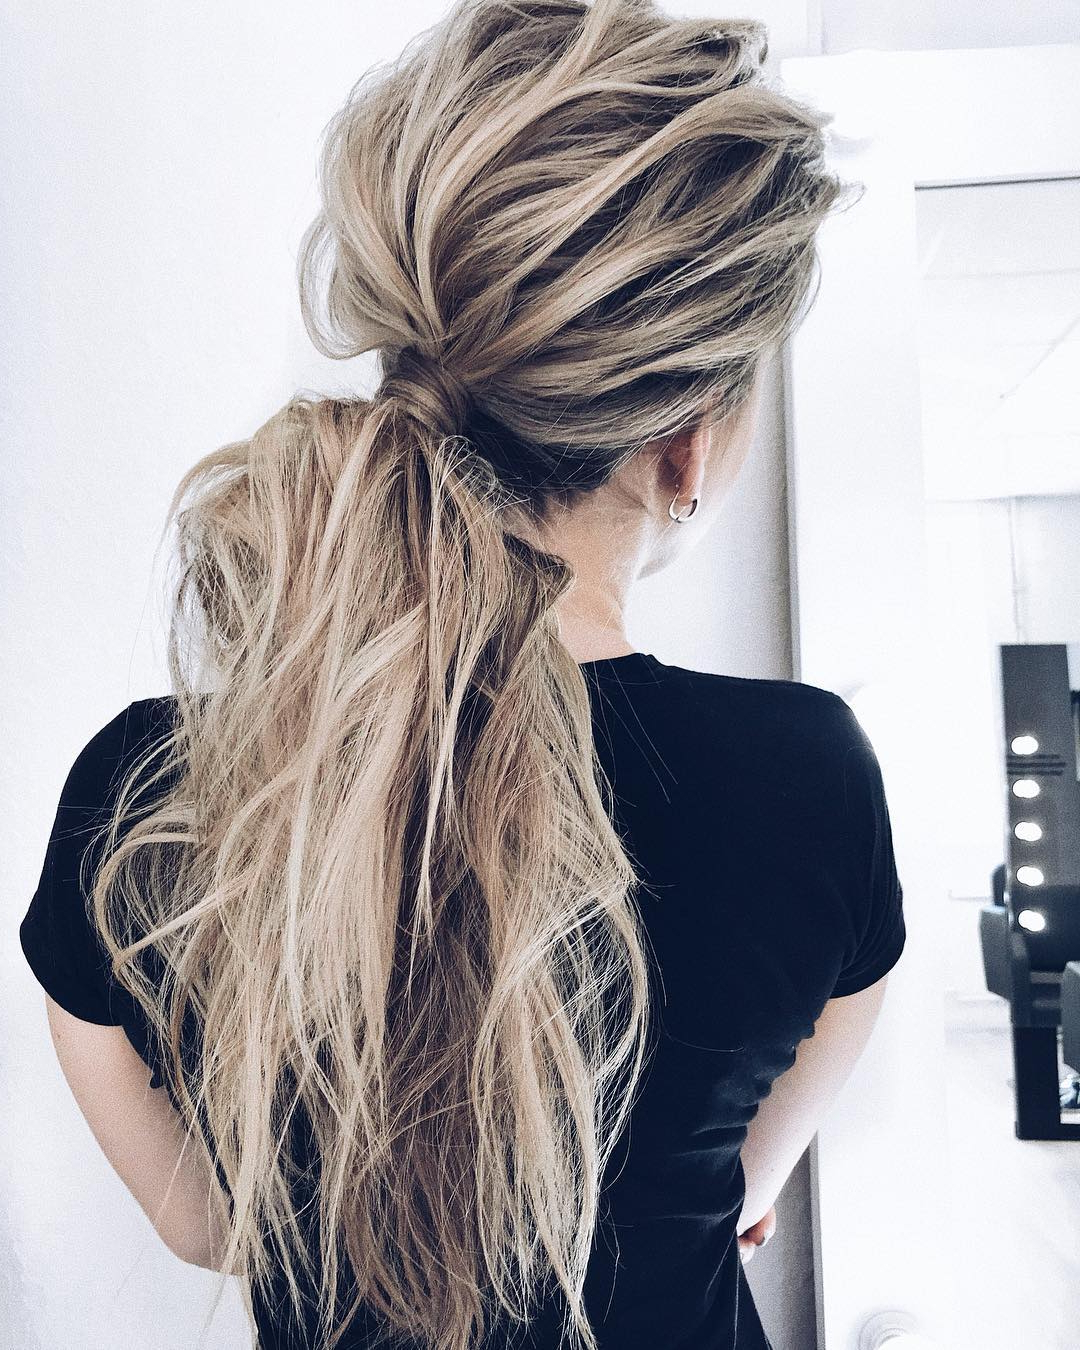 Widely Used Double Plaiting Ponytail Hairstyles Within 10 Creative Ponytail Hairstyles For Long Hair, Summer Hairstyle (View 6 of 20)